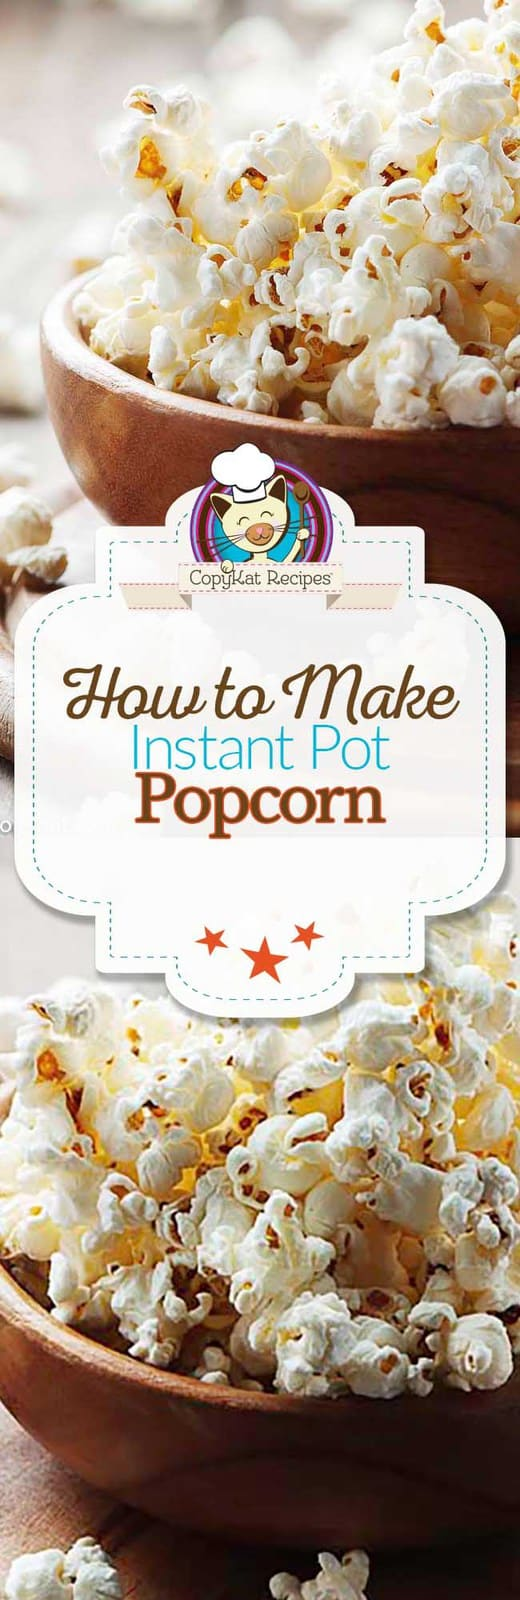 Make Popcorn in your Instant Pot!